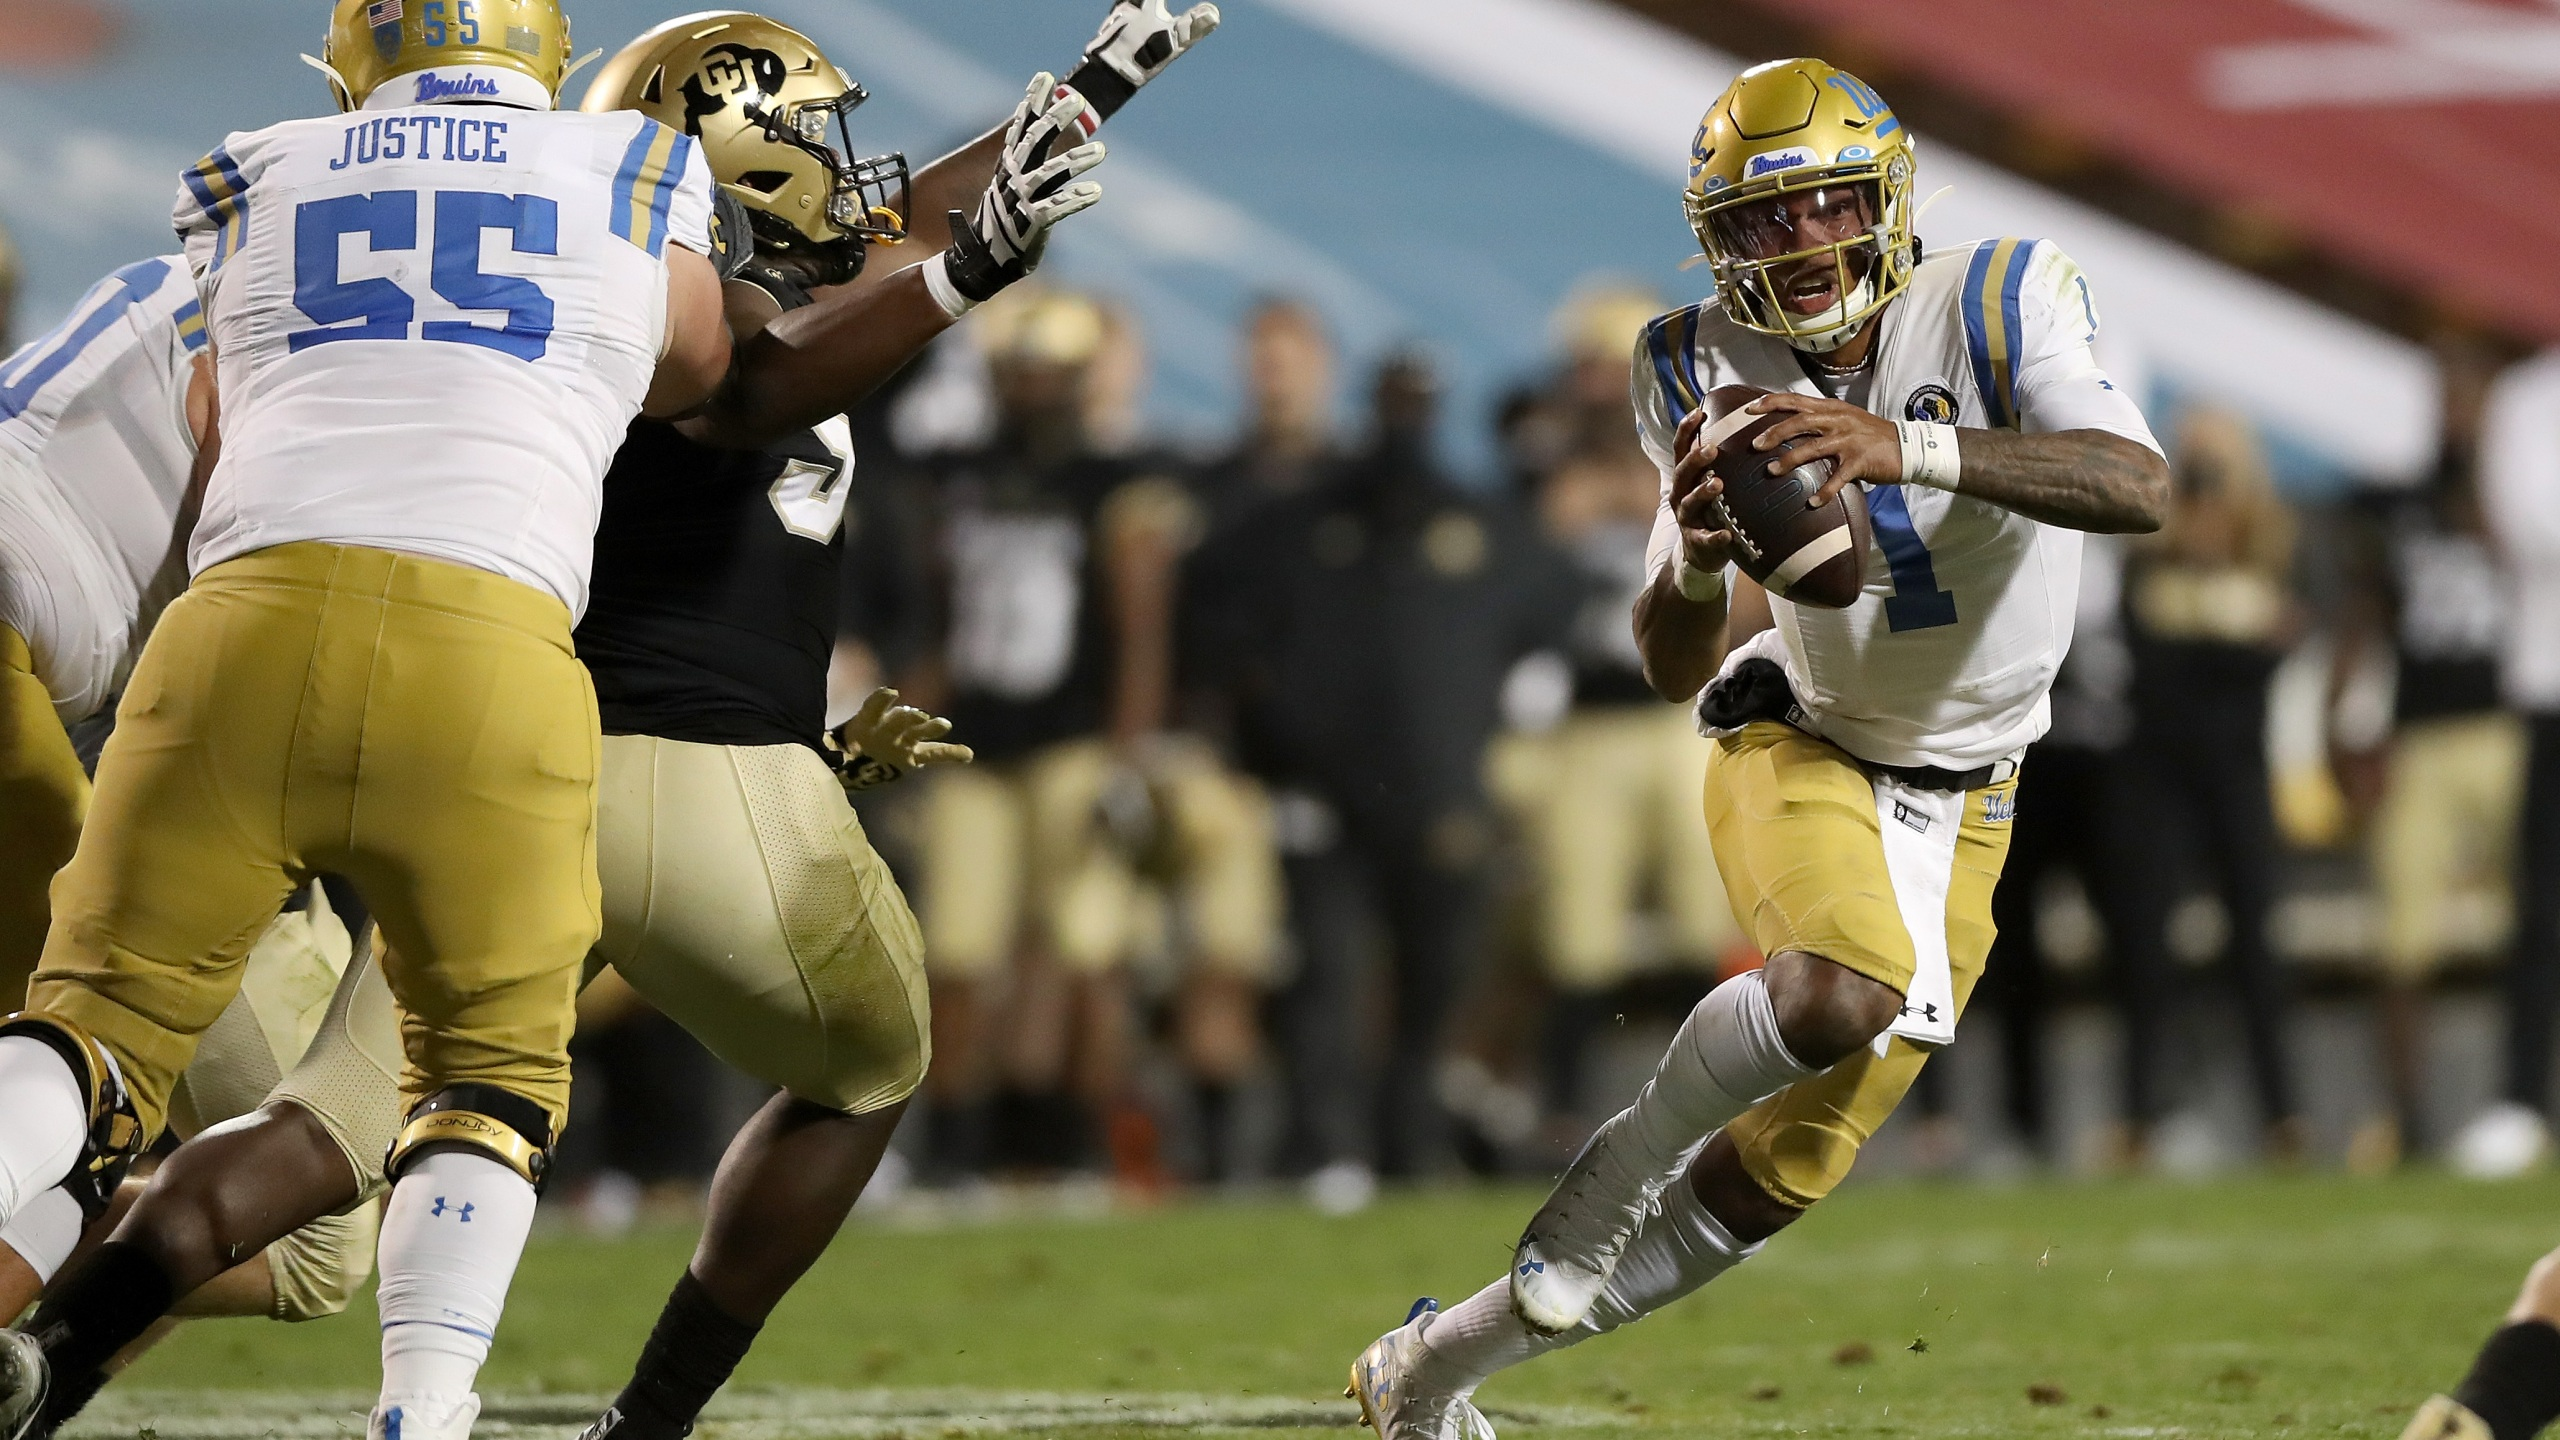 Quarterback Dorian Thompson-Robinson #1 of the UCLA Bruins runs out of the pocket against the Colorado Buffaloes in the fourth quarter at Folsom Field on November 07, 2020 in Boulder, Colorado. (Matthew Stockman/Getty Images)